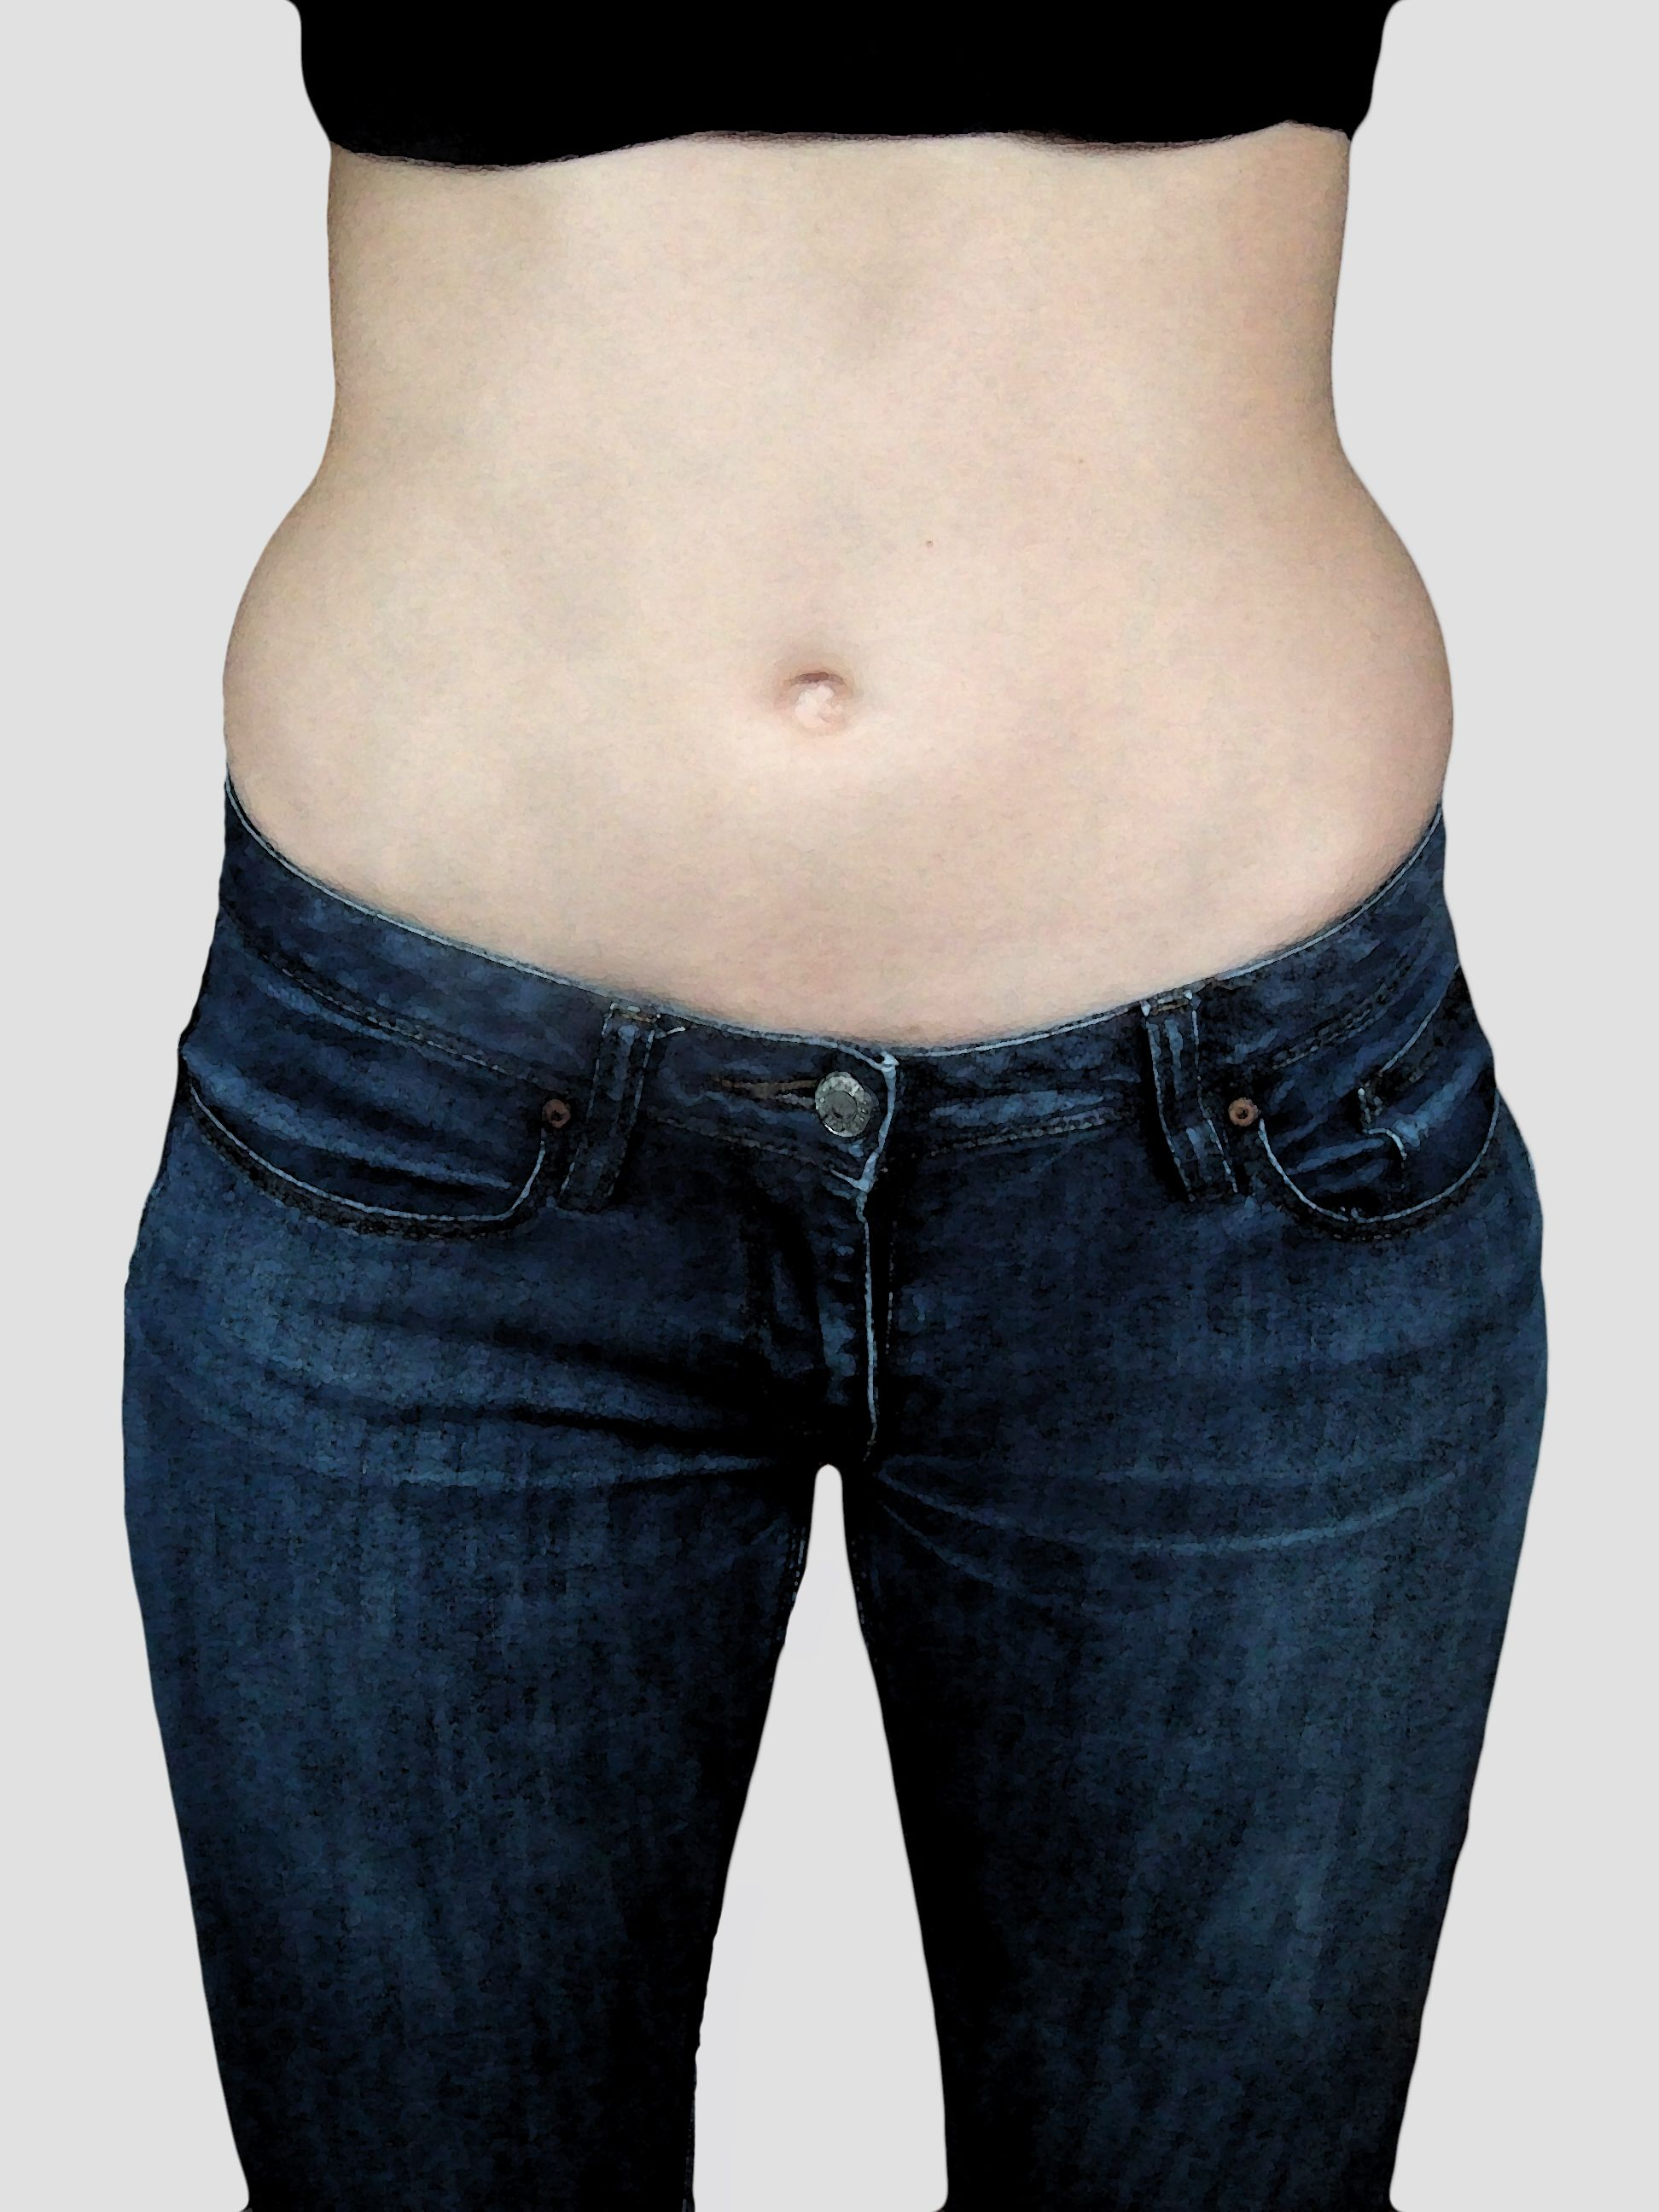 lose cellulite after weight loss